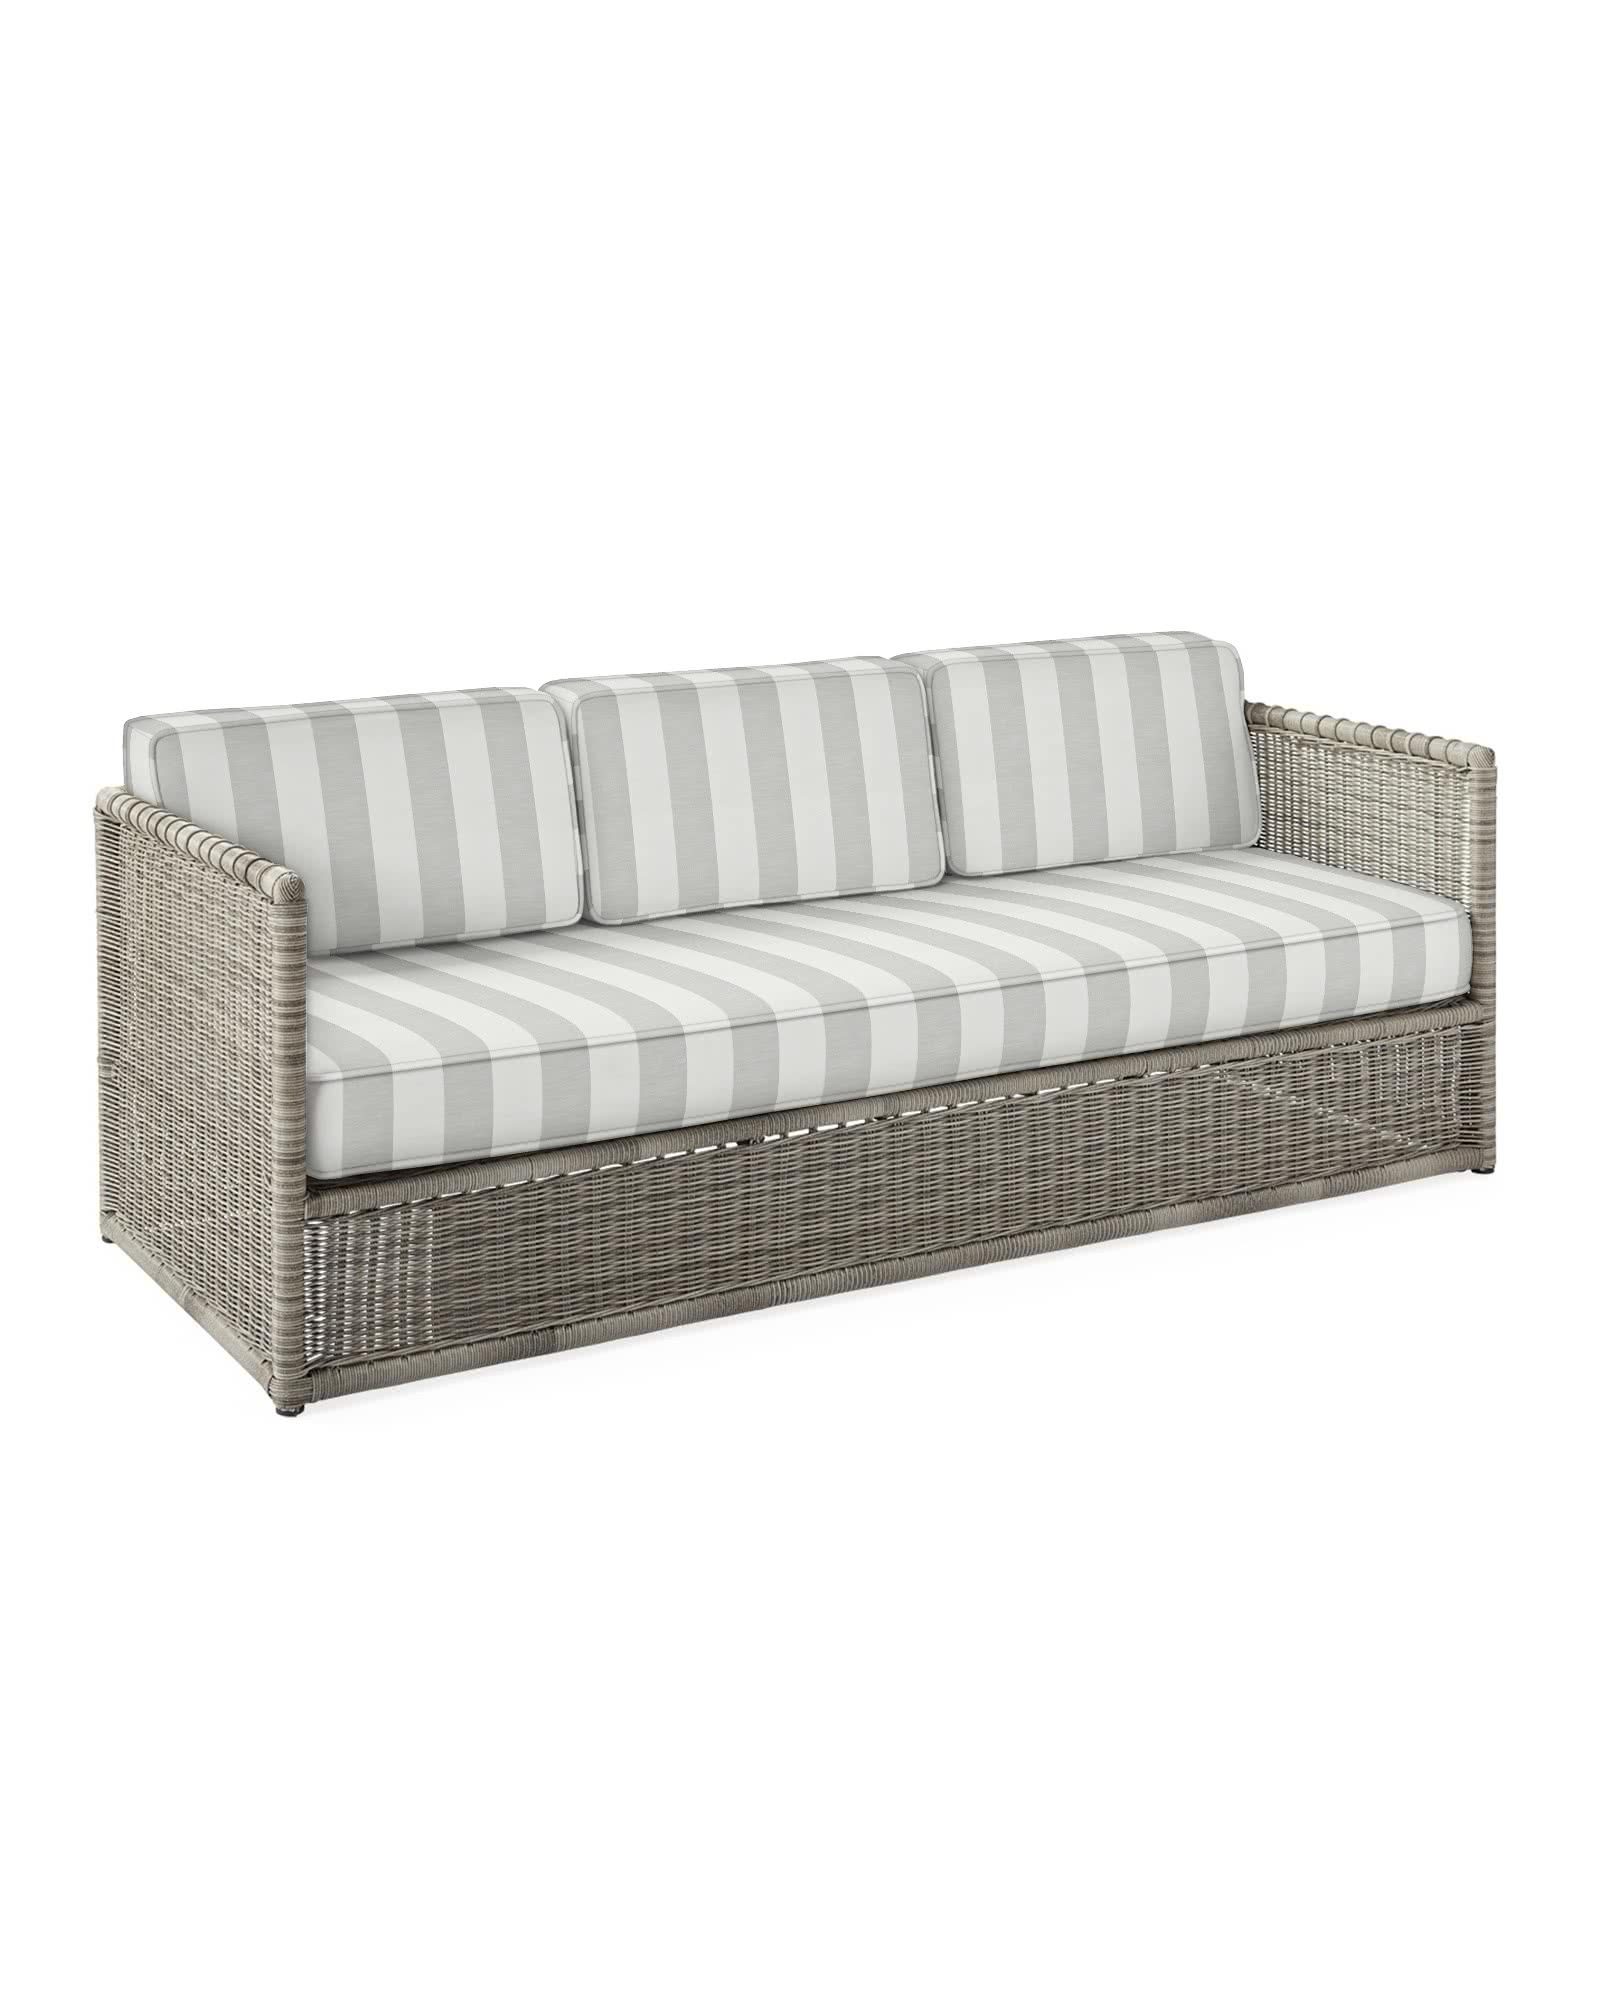 Pacifica Sofa - Harbor Grey,